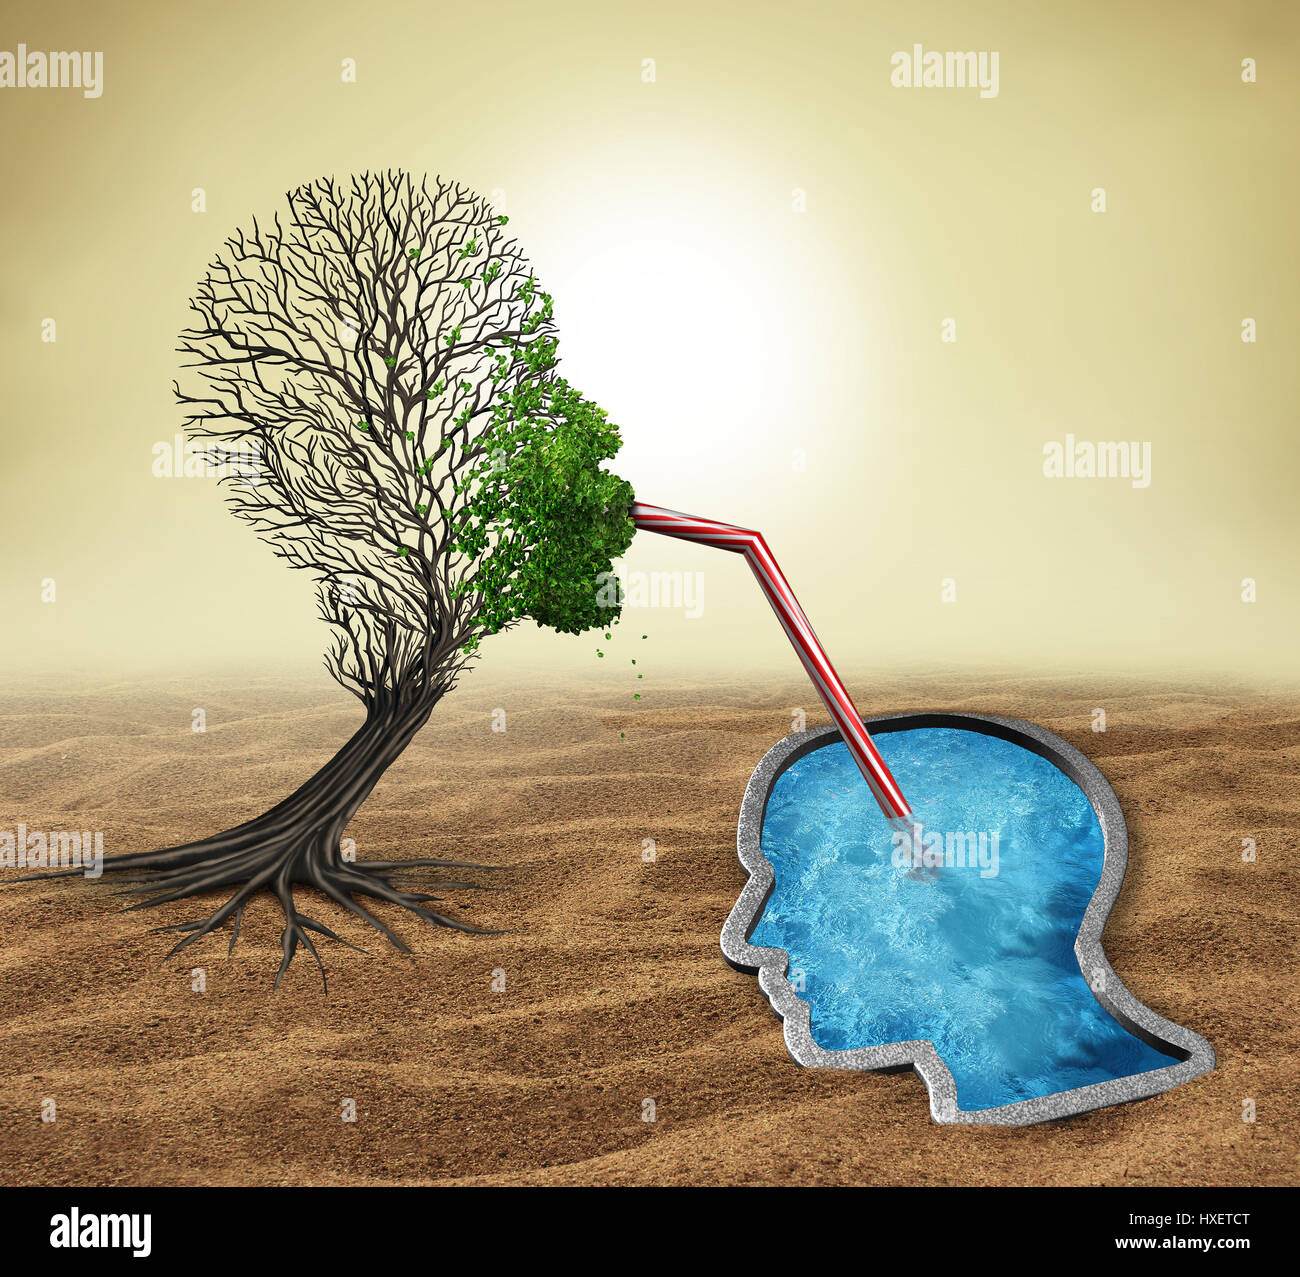 Psychology treatment and mental health assistance as a sick tree shaped as a human head drinking water from a pool - Stock Image